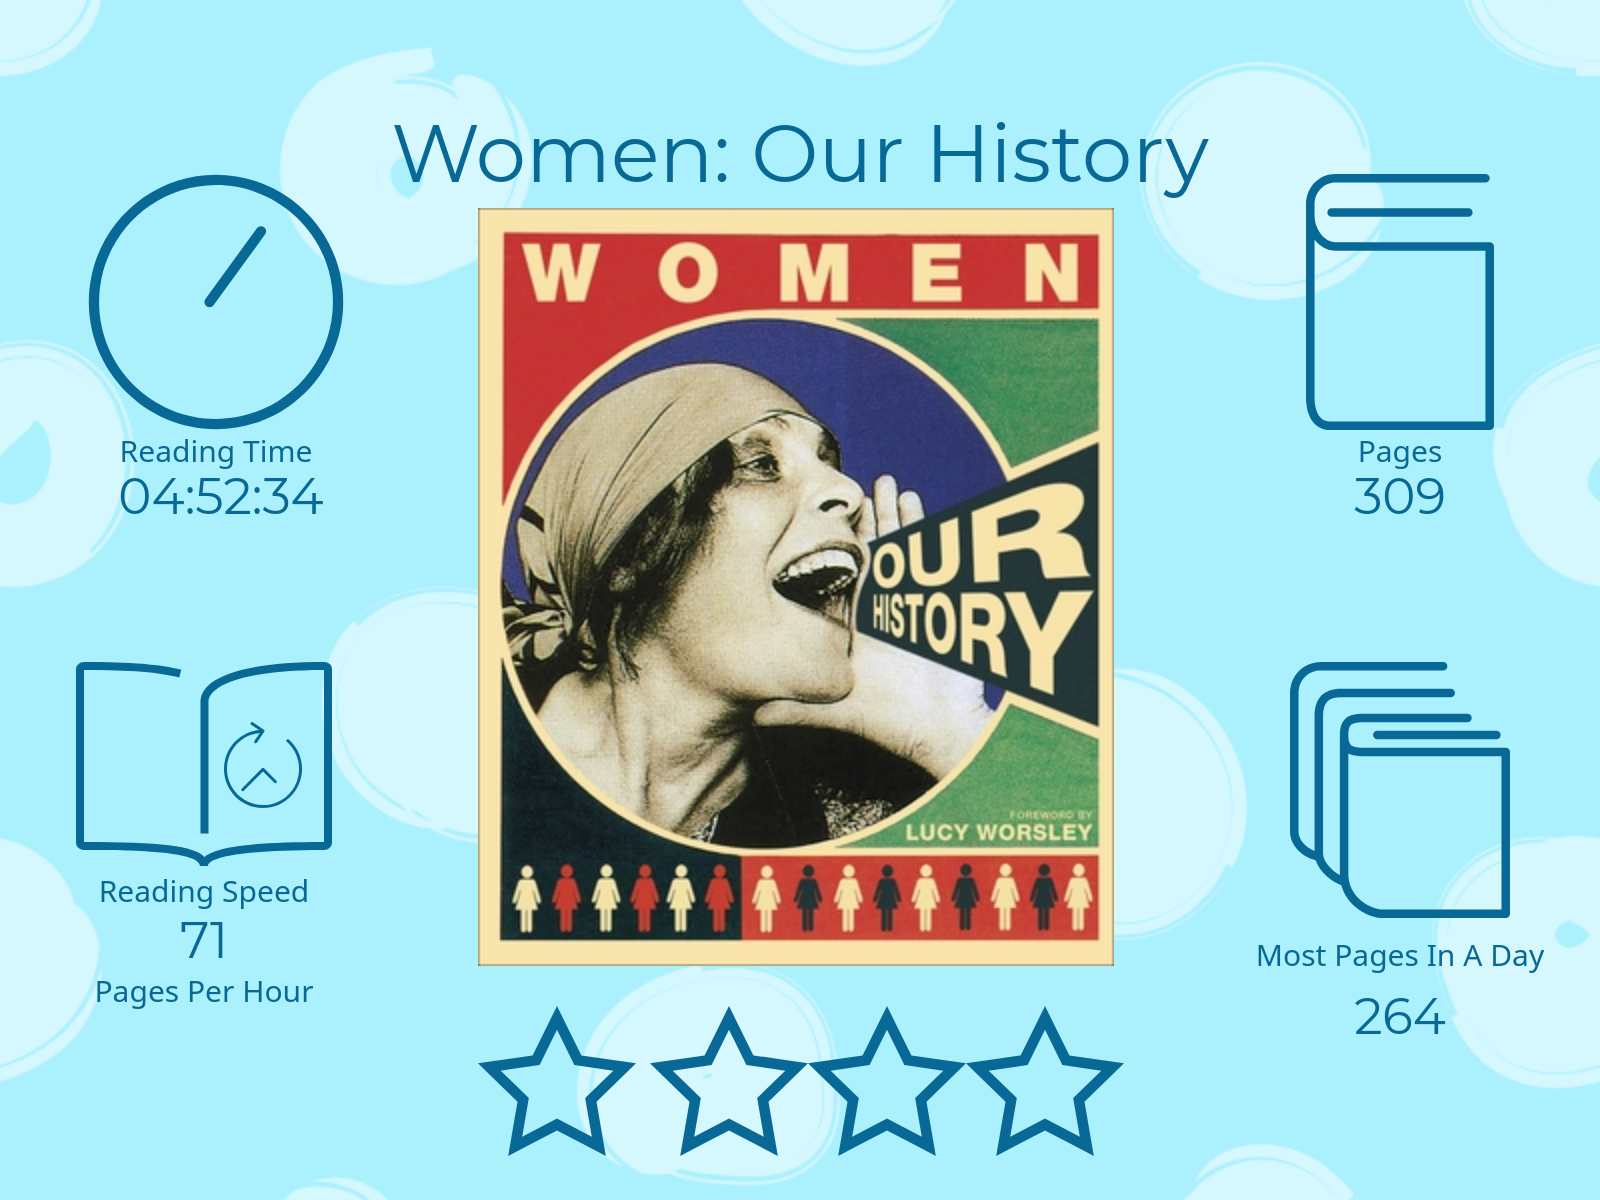 Women Our History 4 stars Read Time 4 hours 52 Minutes and 34 seconds 309 Pages 71 pages per hour Most pages read in a day: 264